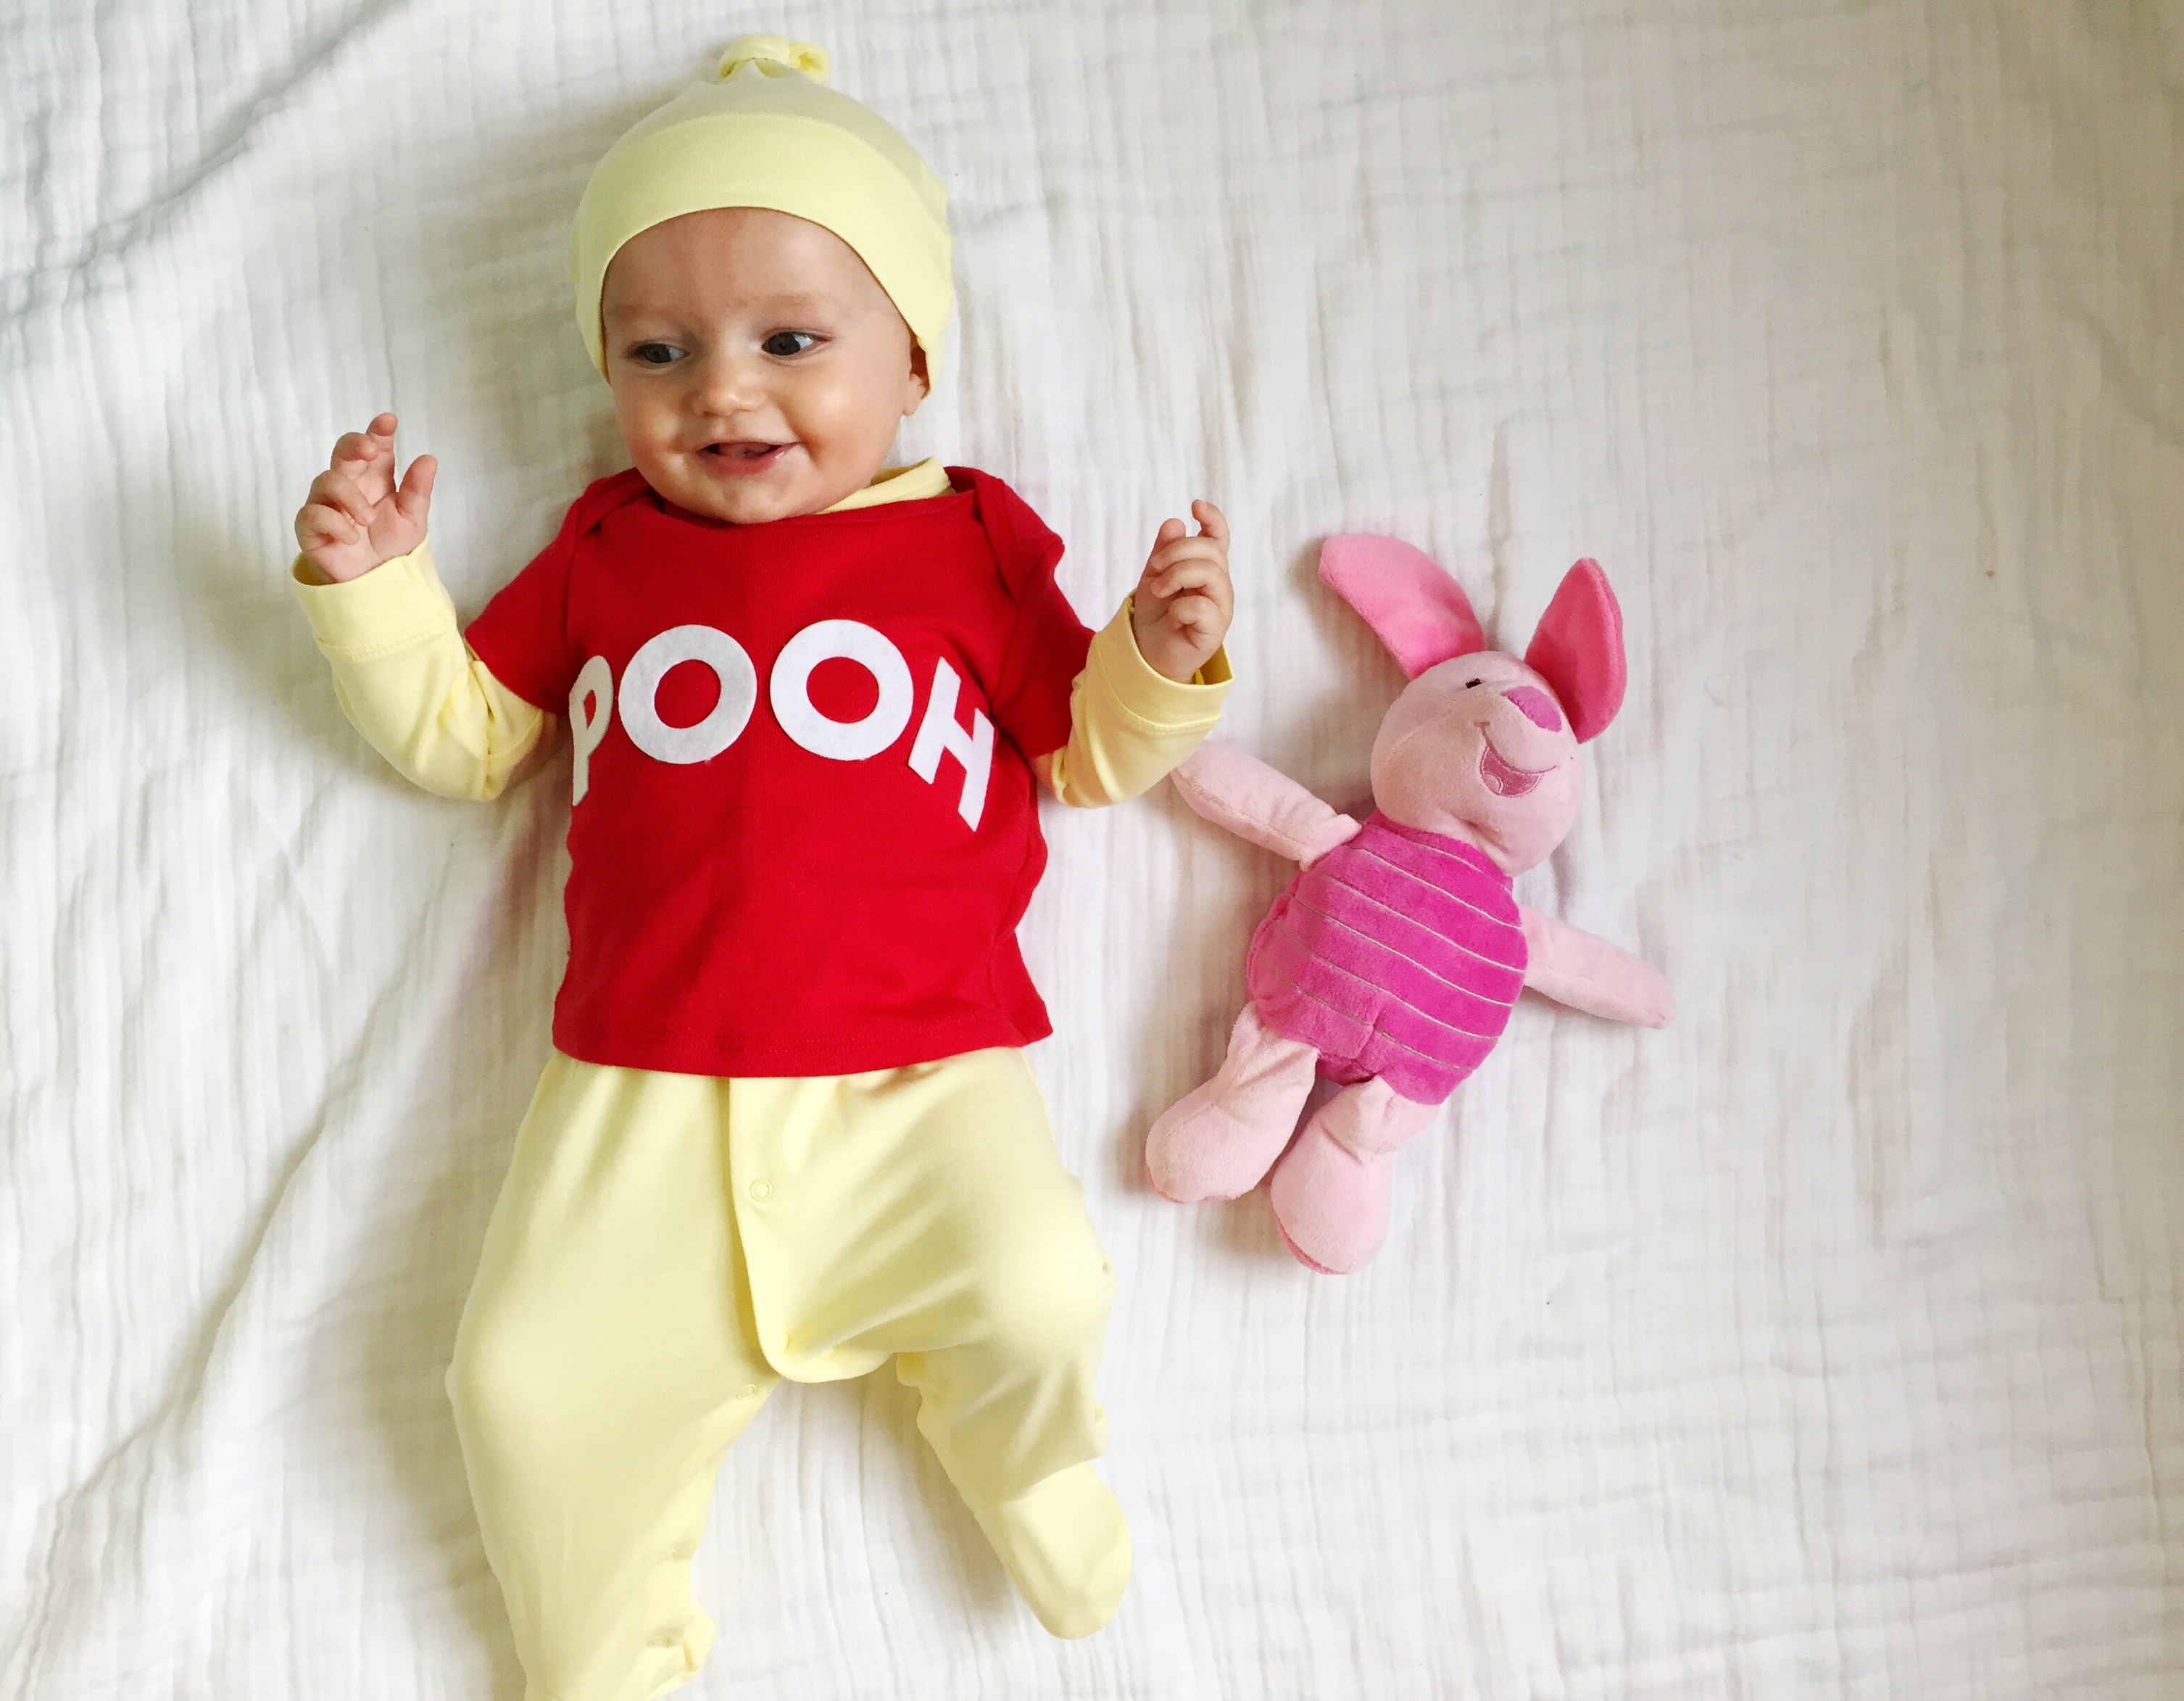 Best ideas about Baby Costume DIY . Save or Pin 5 Easy DIY Halloween Costumes for Baby The Chirping Moms Now.